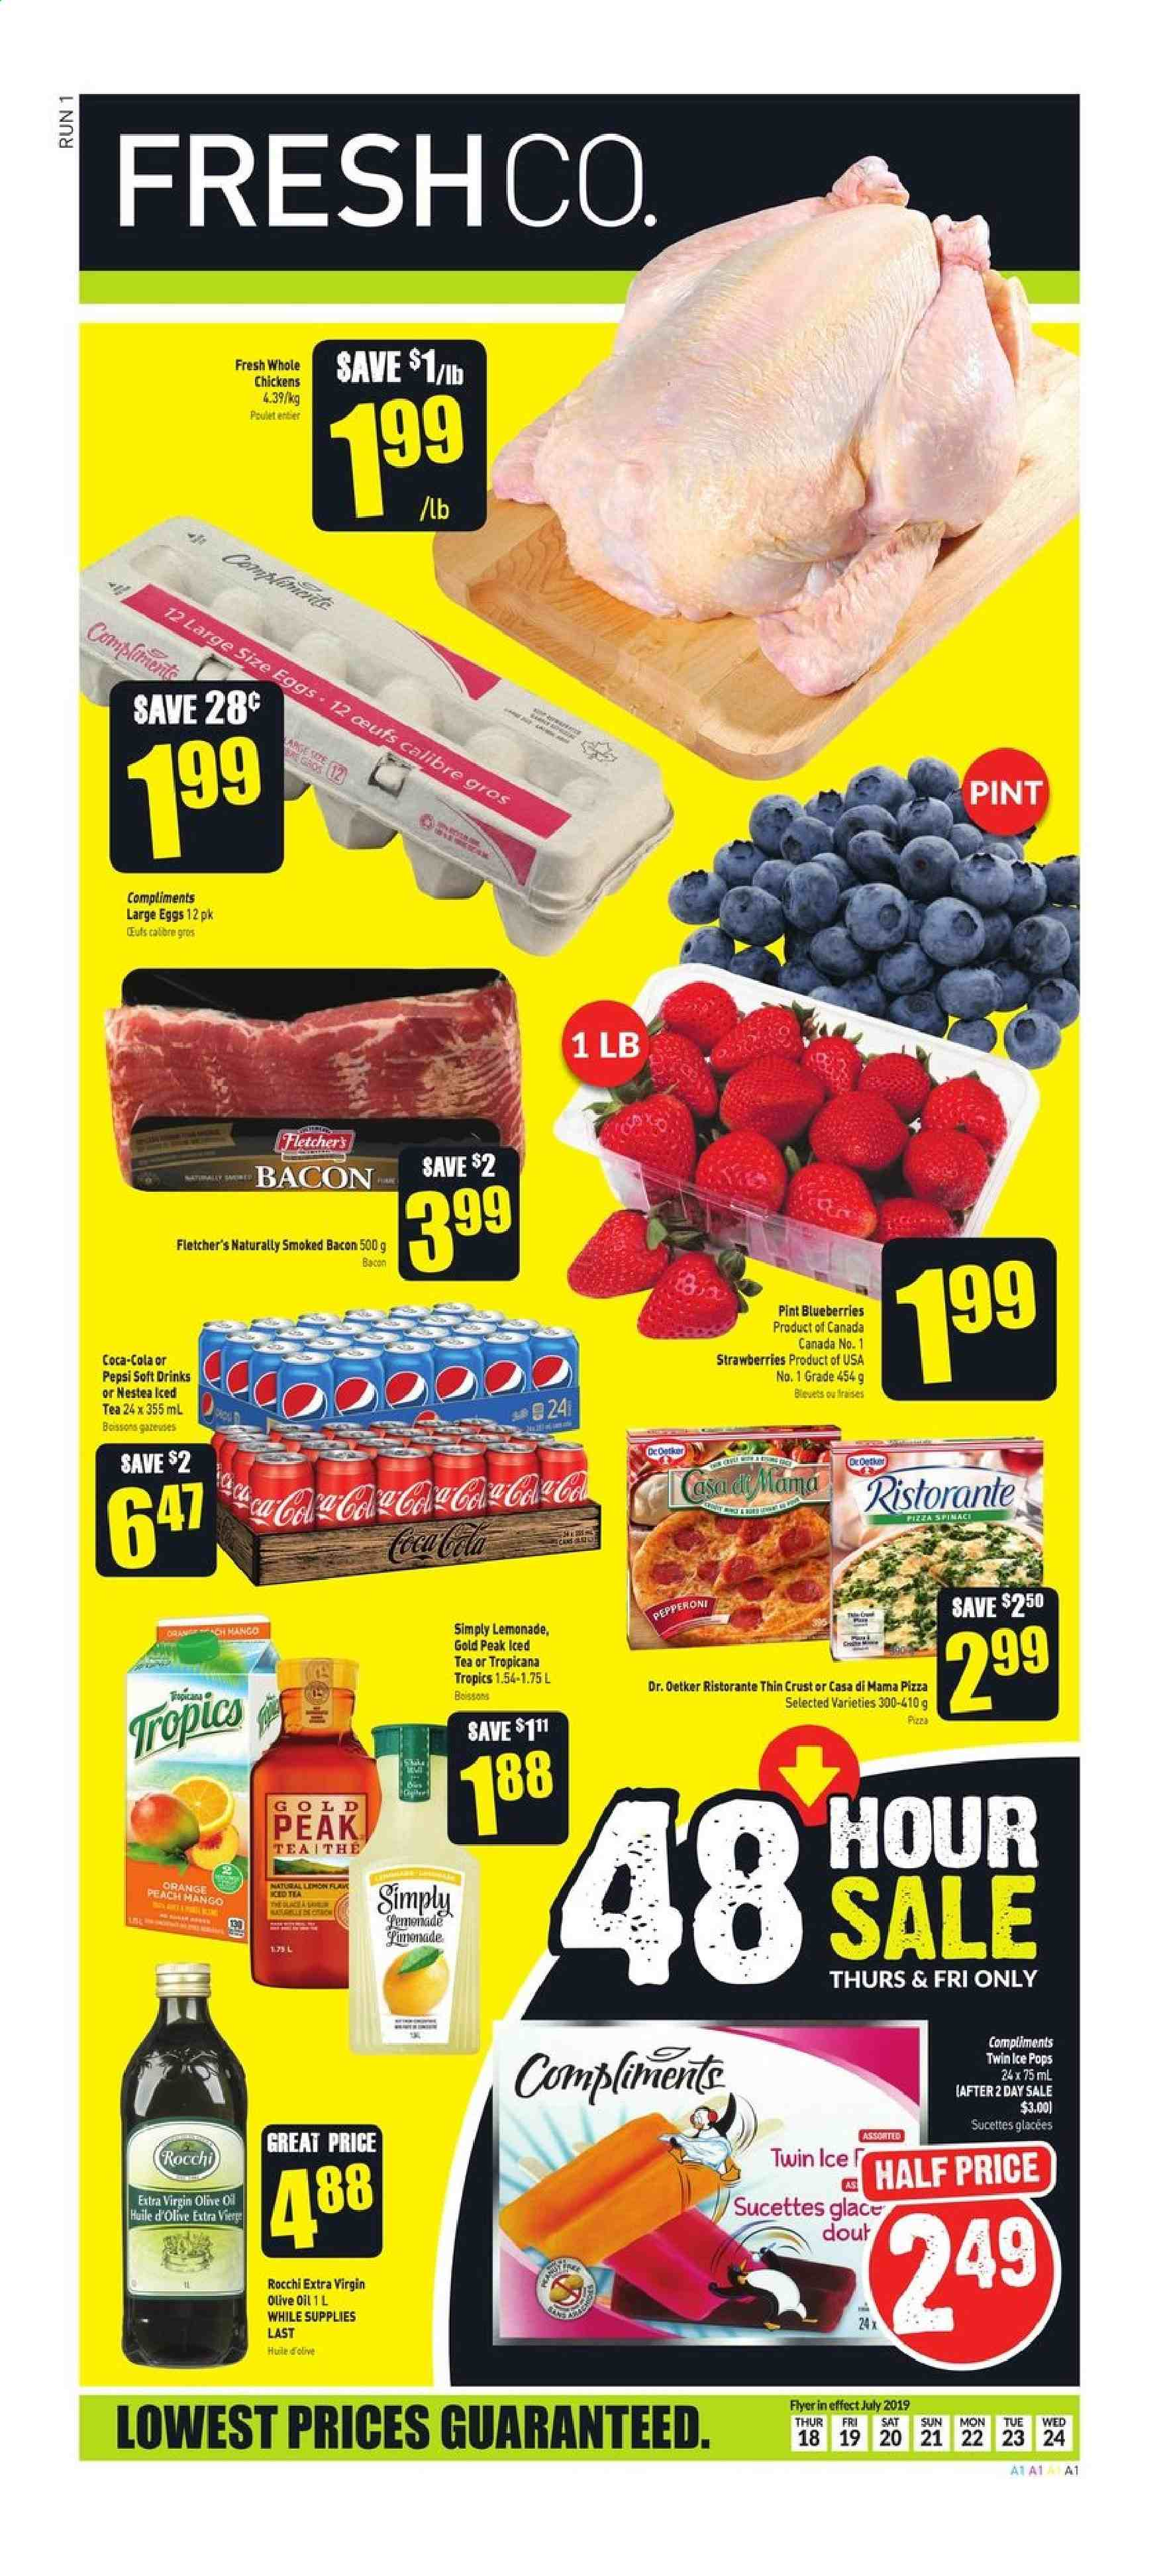 FreshCo. Flyer  - July 18, 2019 - July 24, 2019. Page 1.